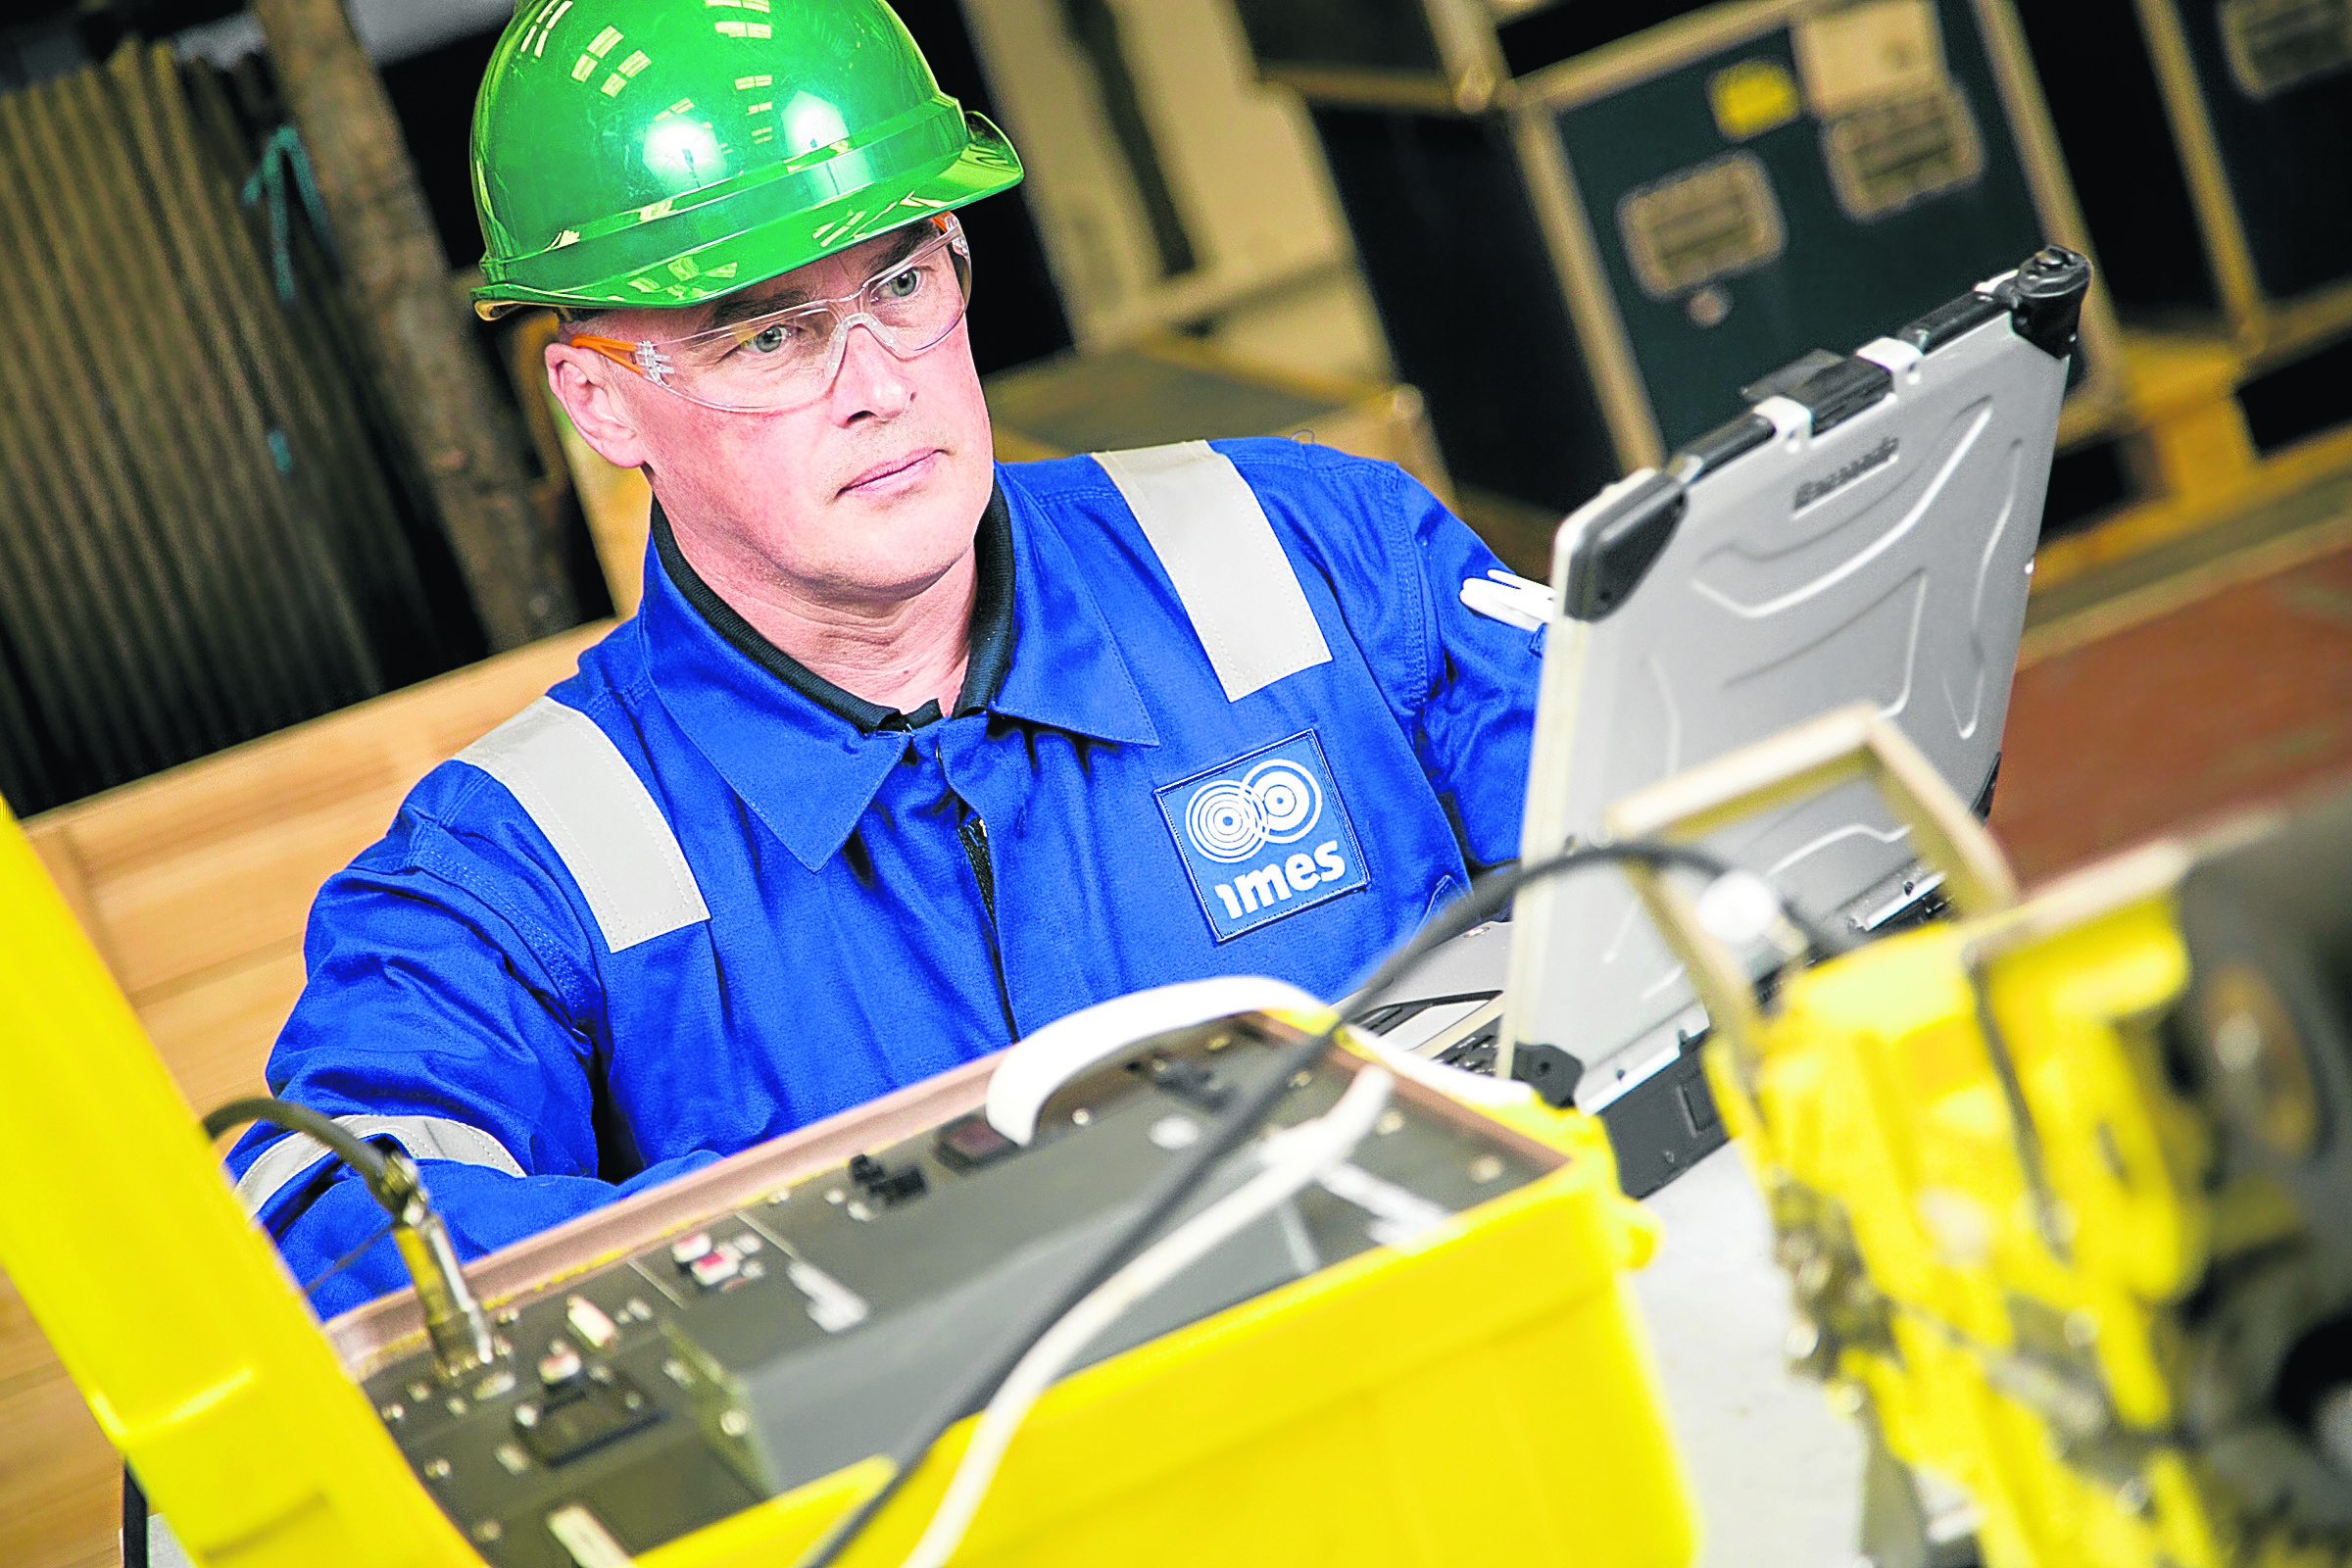 Imes provides inspection and engineering services and monitoring and control systems for energy and defence customers